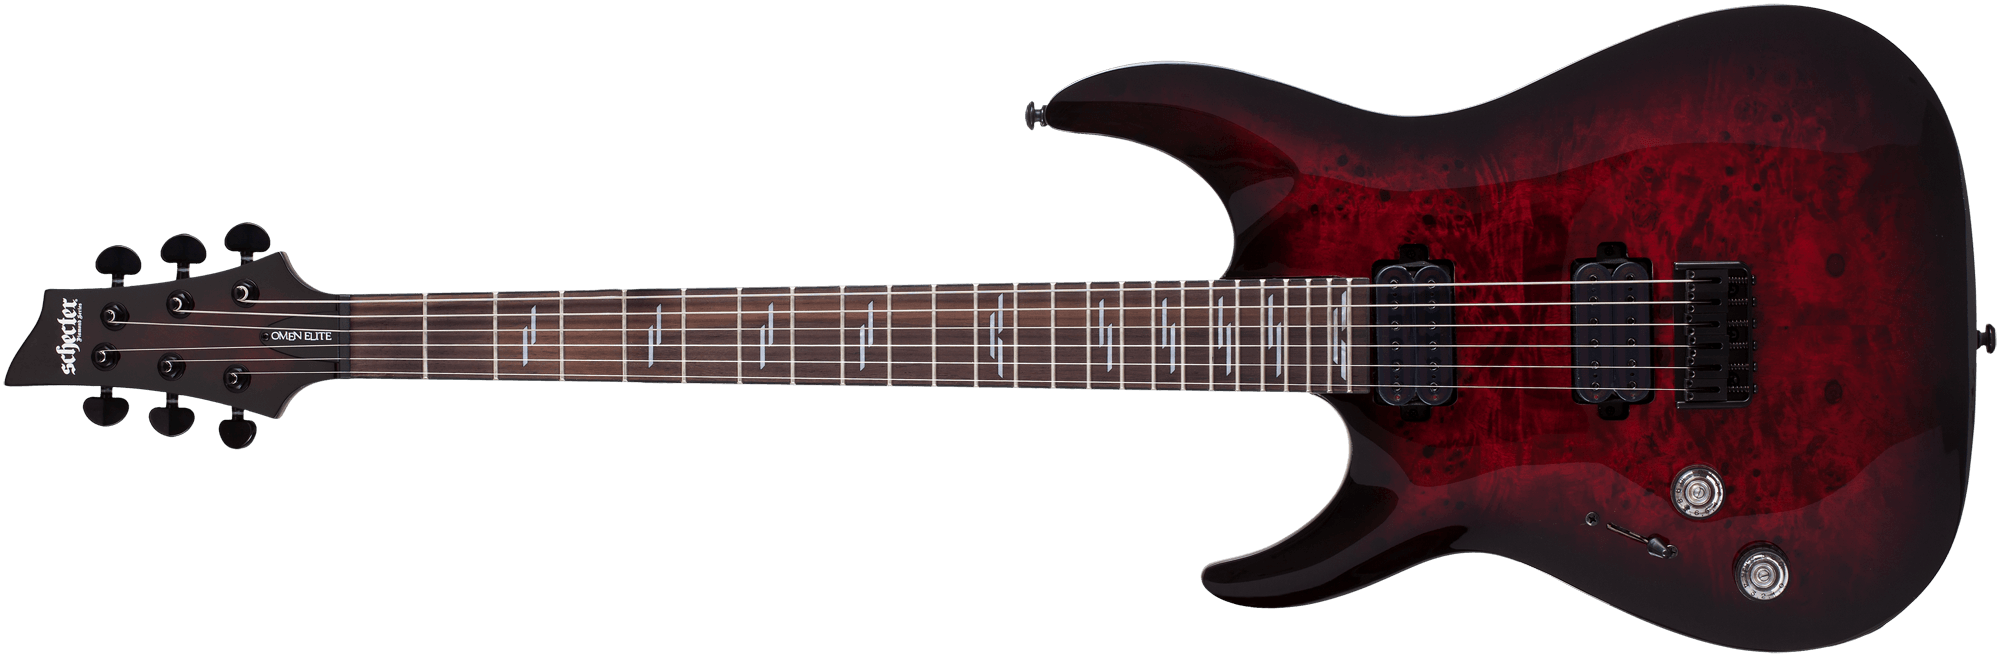 Black Cherry Burst lefthand